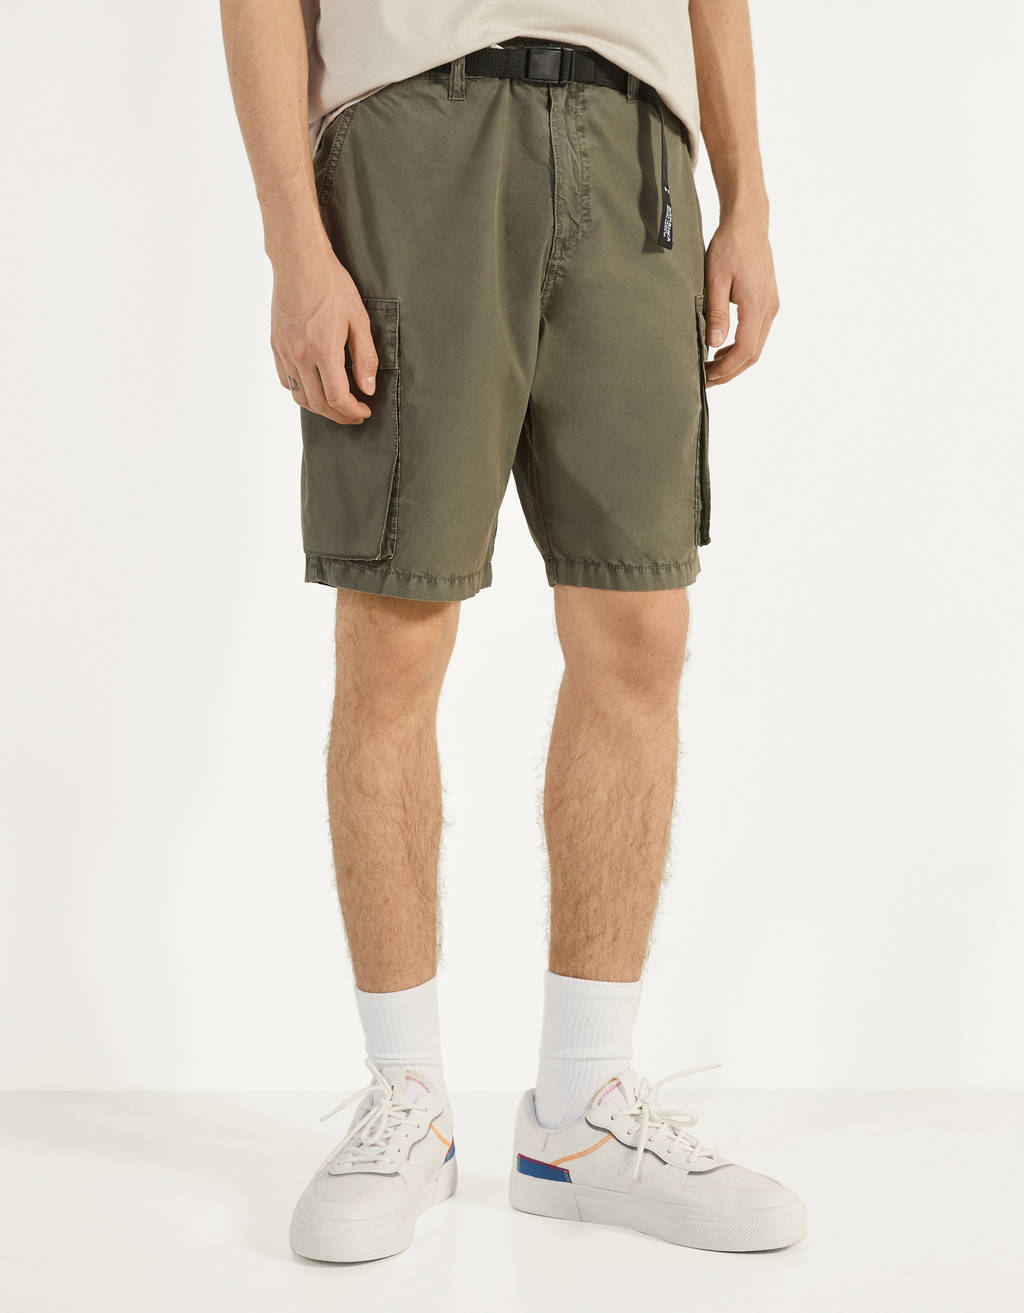 Poplin cargo Bermuda shorts with a belt